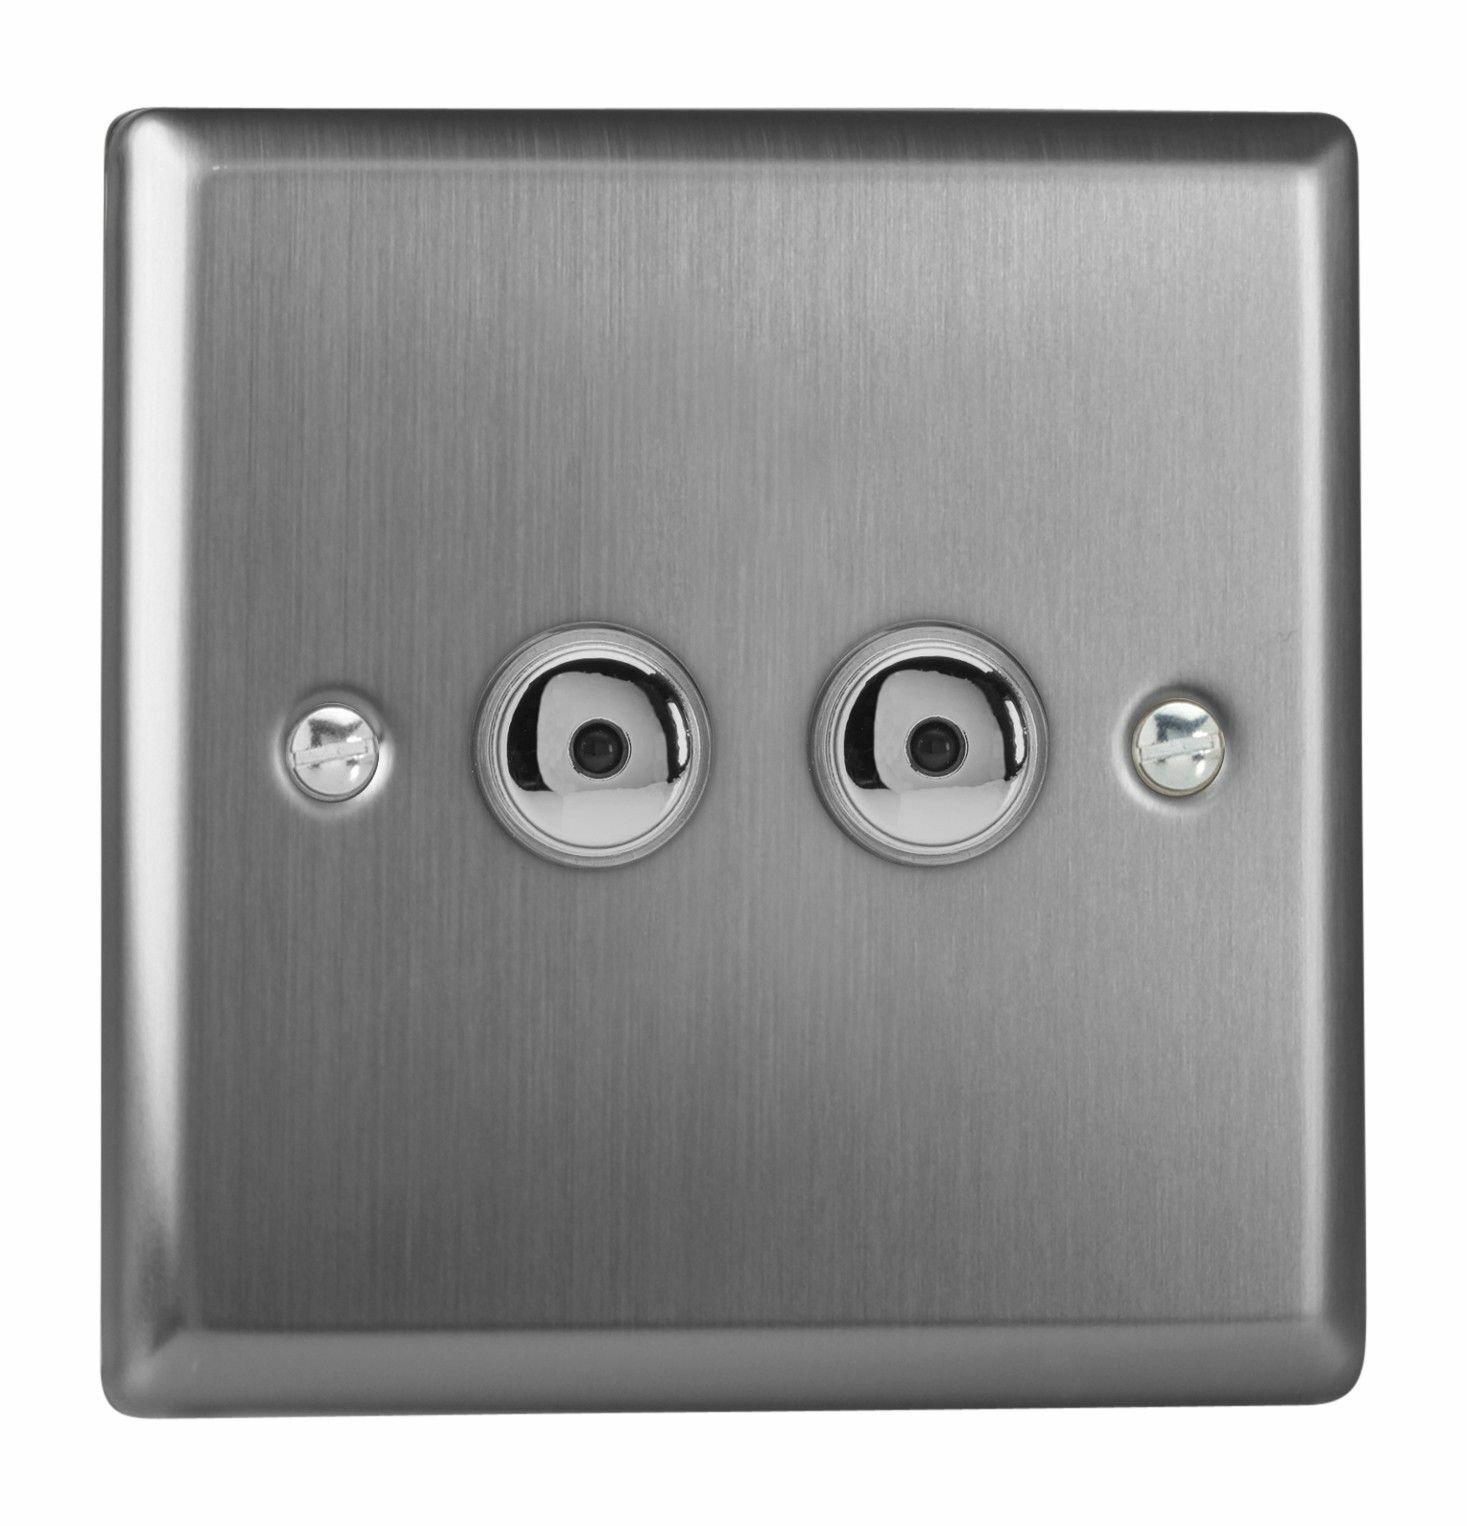 Varilight IJTI102 Brushed Steel 2 Gang 1W Remote Touch Master LED Dimmer 0-100W